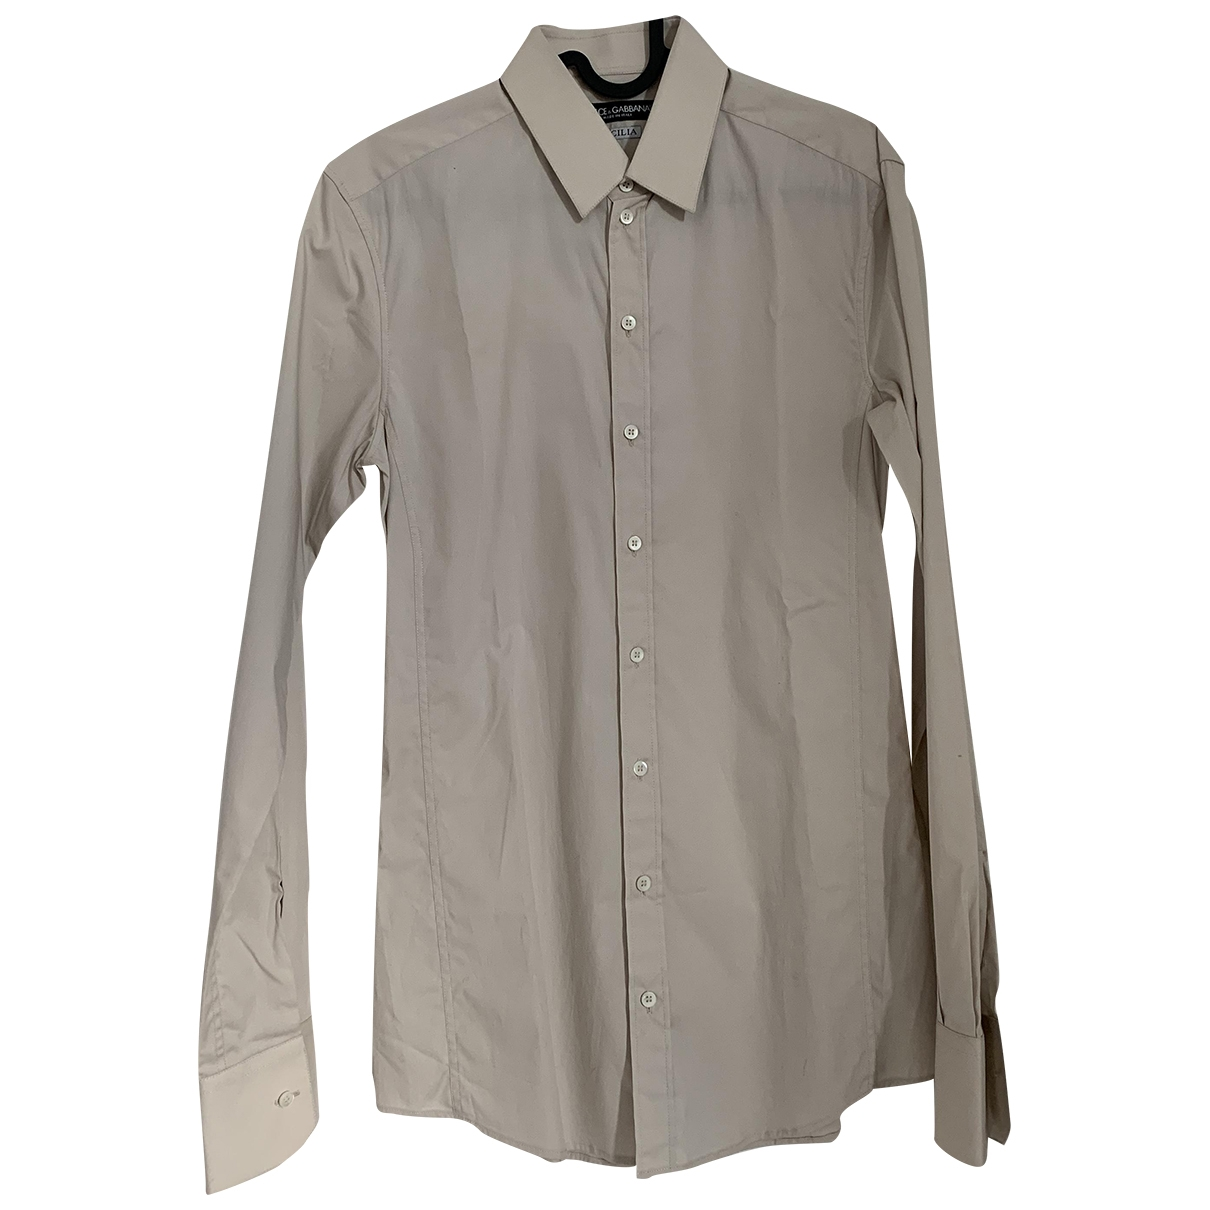 Dolce & Gabbana \N Beige Wool Shirts for Men 38 EU (tour de cou / collar)